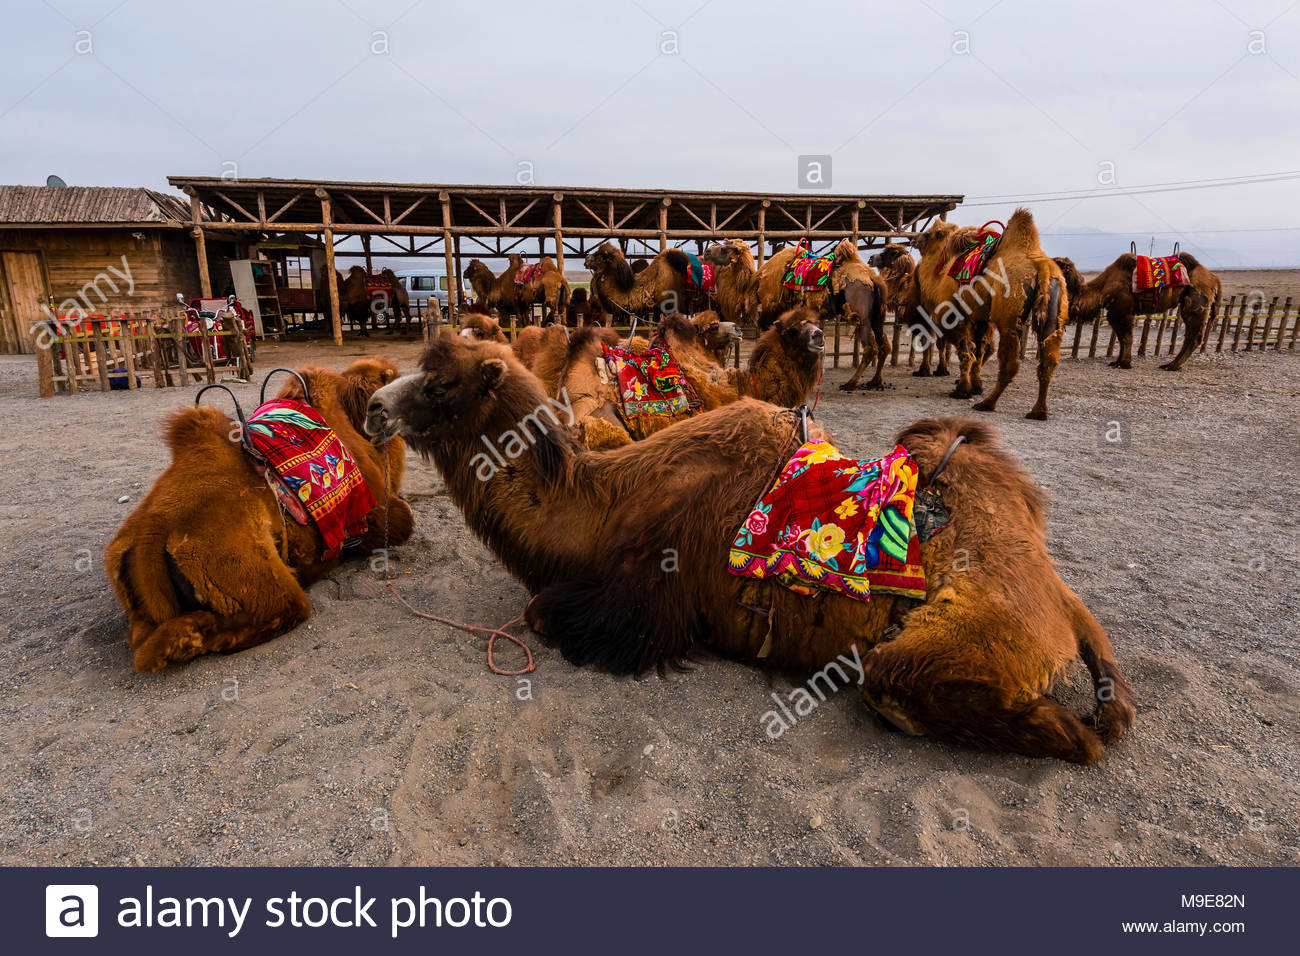 Bactrian camels. Jiayuguan Fort is the western end of the Great Wall built in the Ming Dynasty (1368 – 1644). It was an important military fortress an - Stock Image